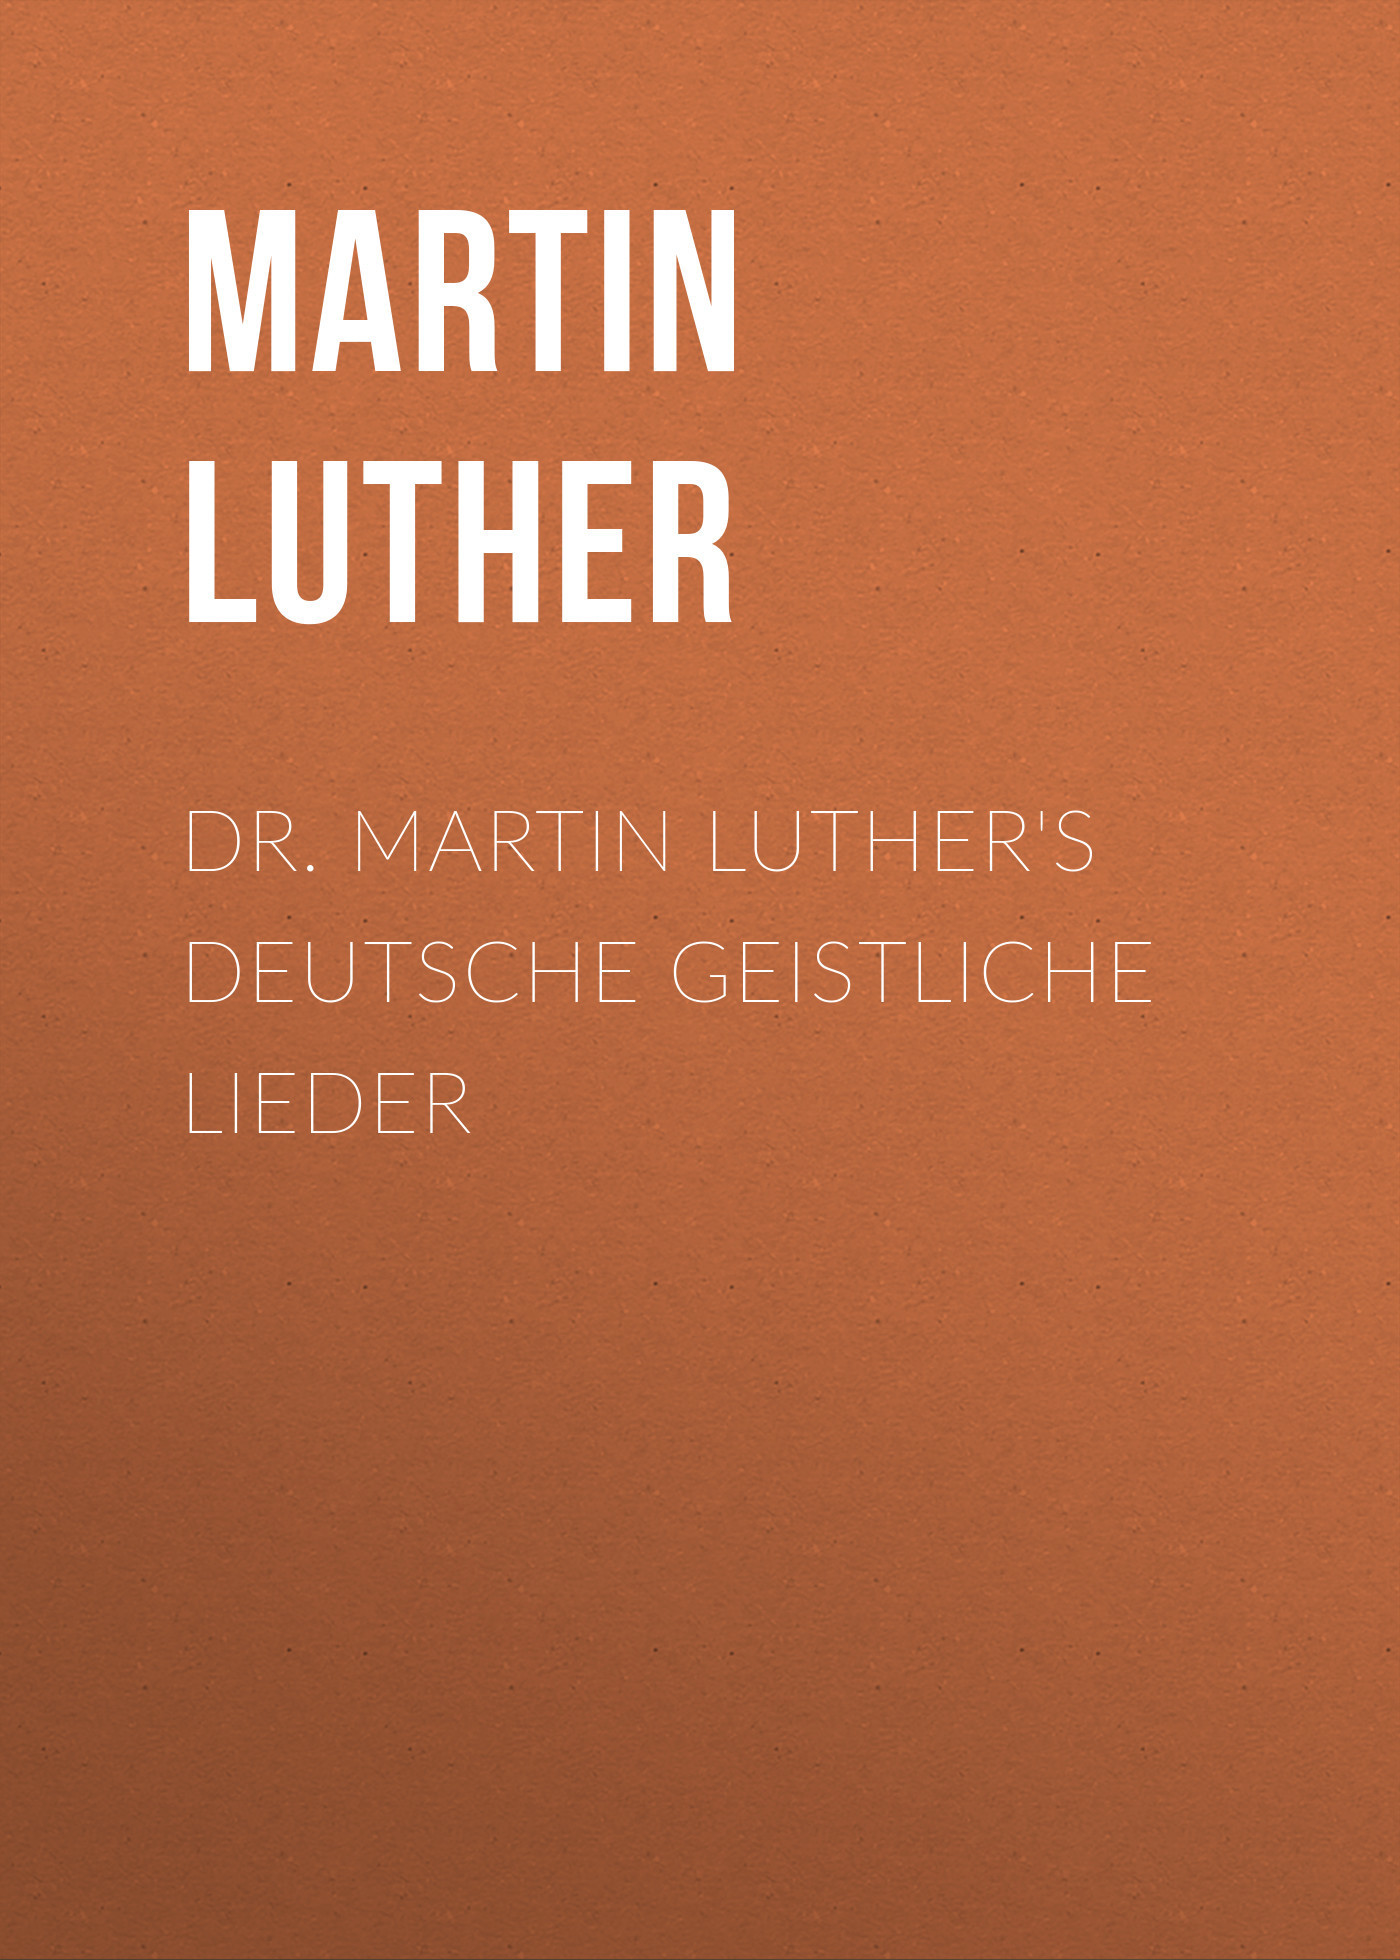 Martin Luther Dr. Martin Luther's Deutsche Geistliche Lieder ботильоны martin pescatore martin pescatore ma108awvev81